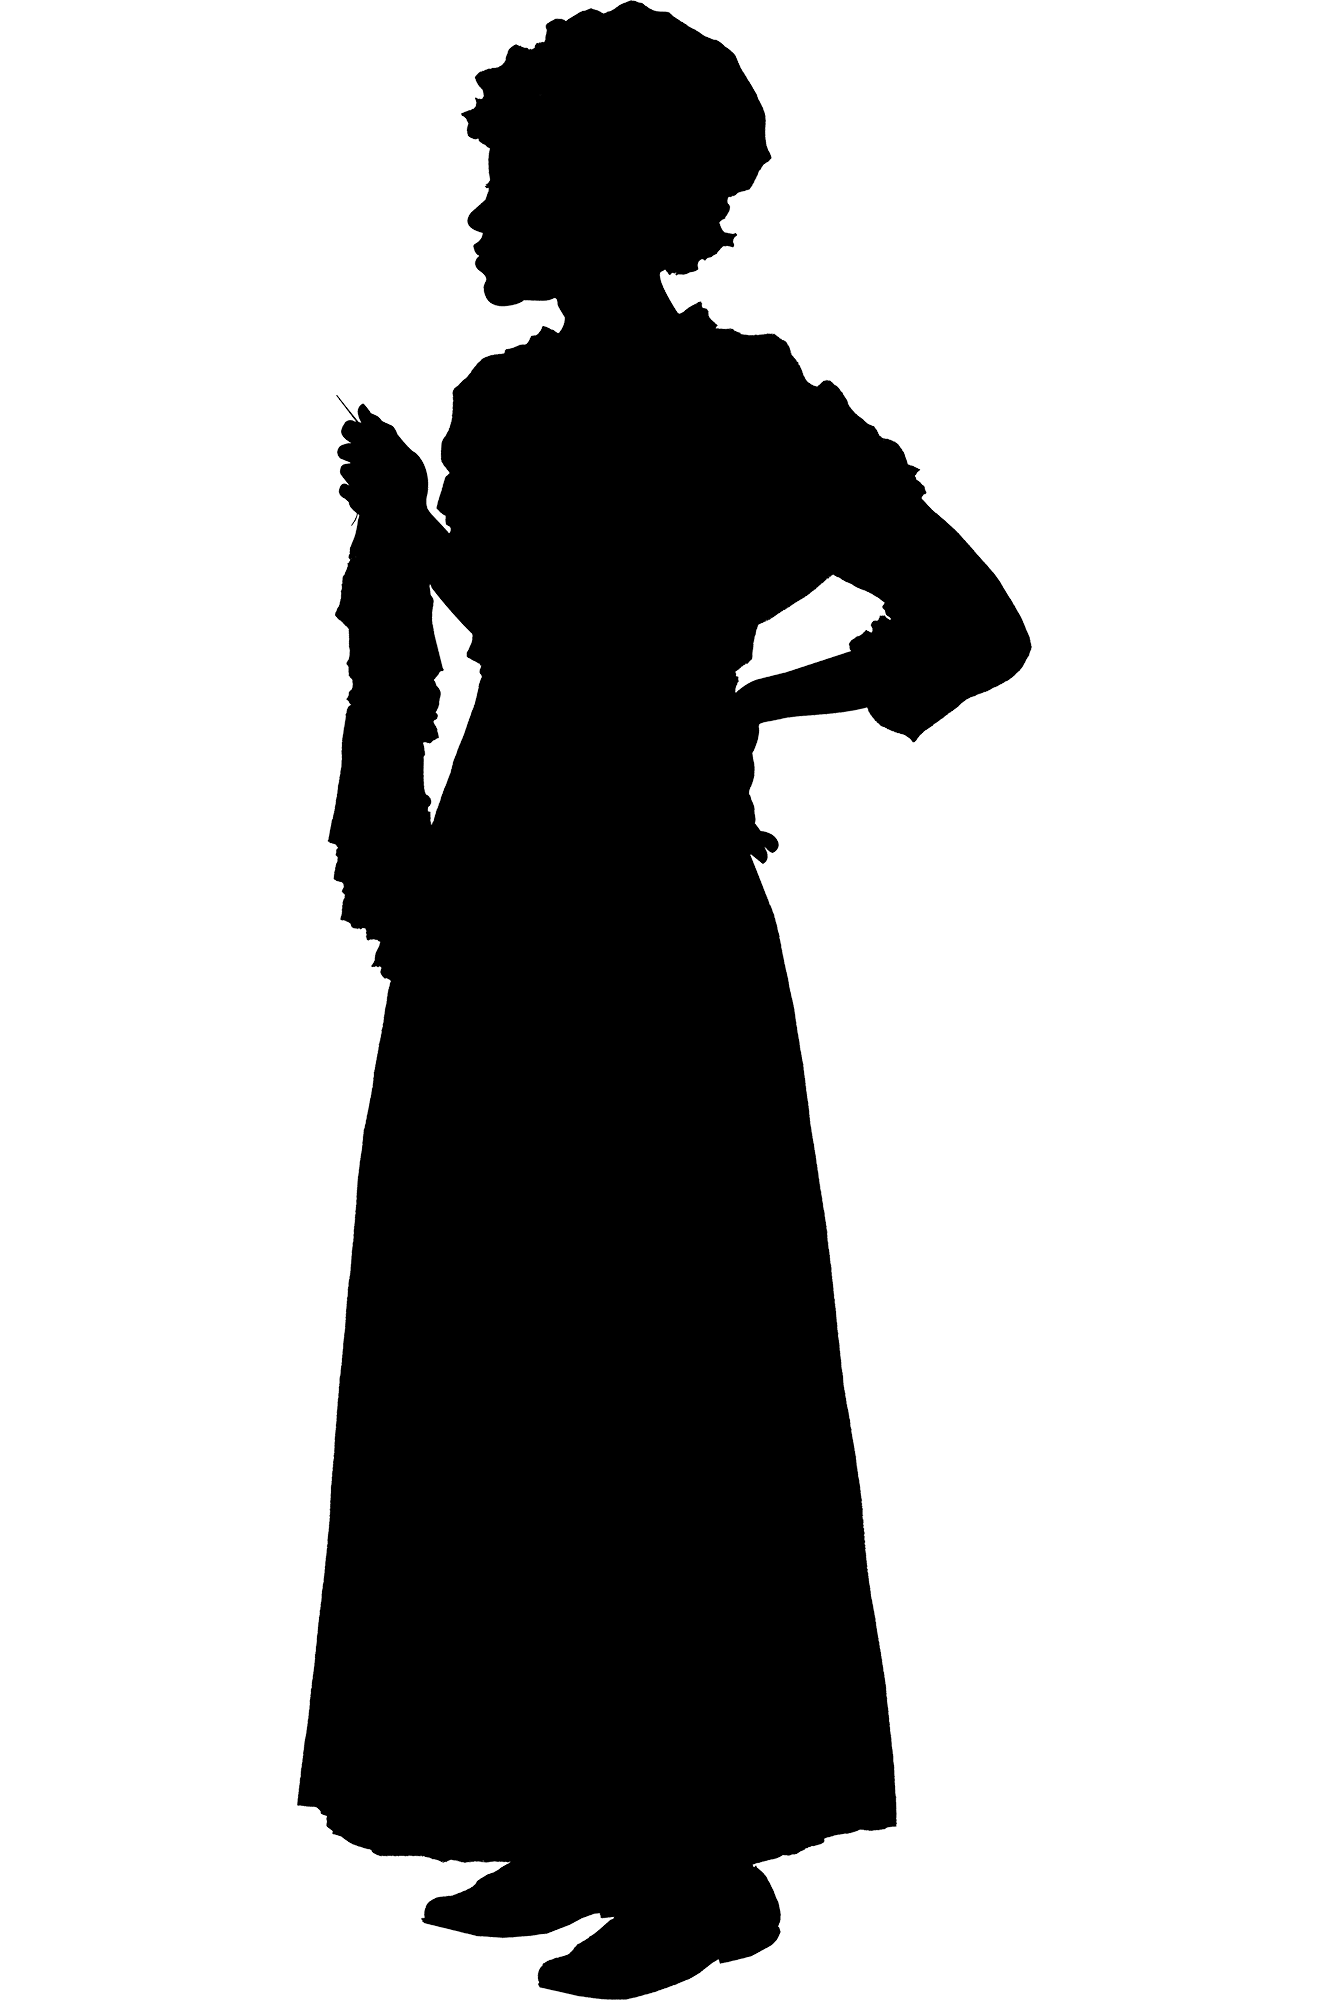 We rarely know what 18th-century enslaved individuals looked like. This silhouette is meant to represent Ona Judge. The design was based on physical descriptions, age, gender, clothing, and work assignment.